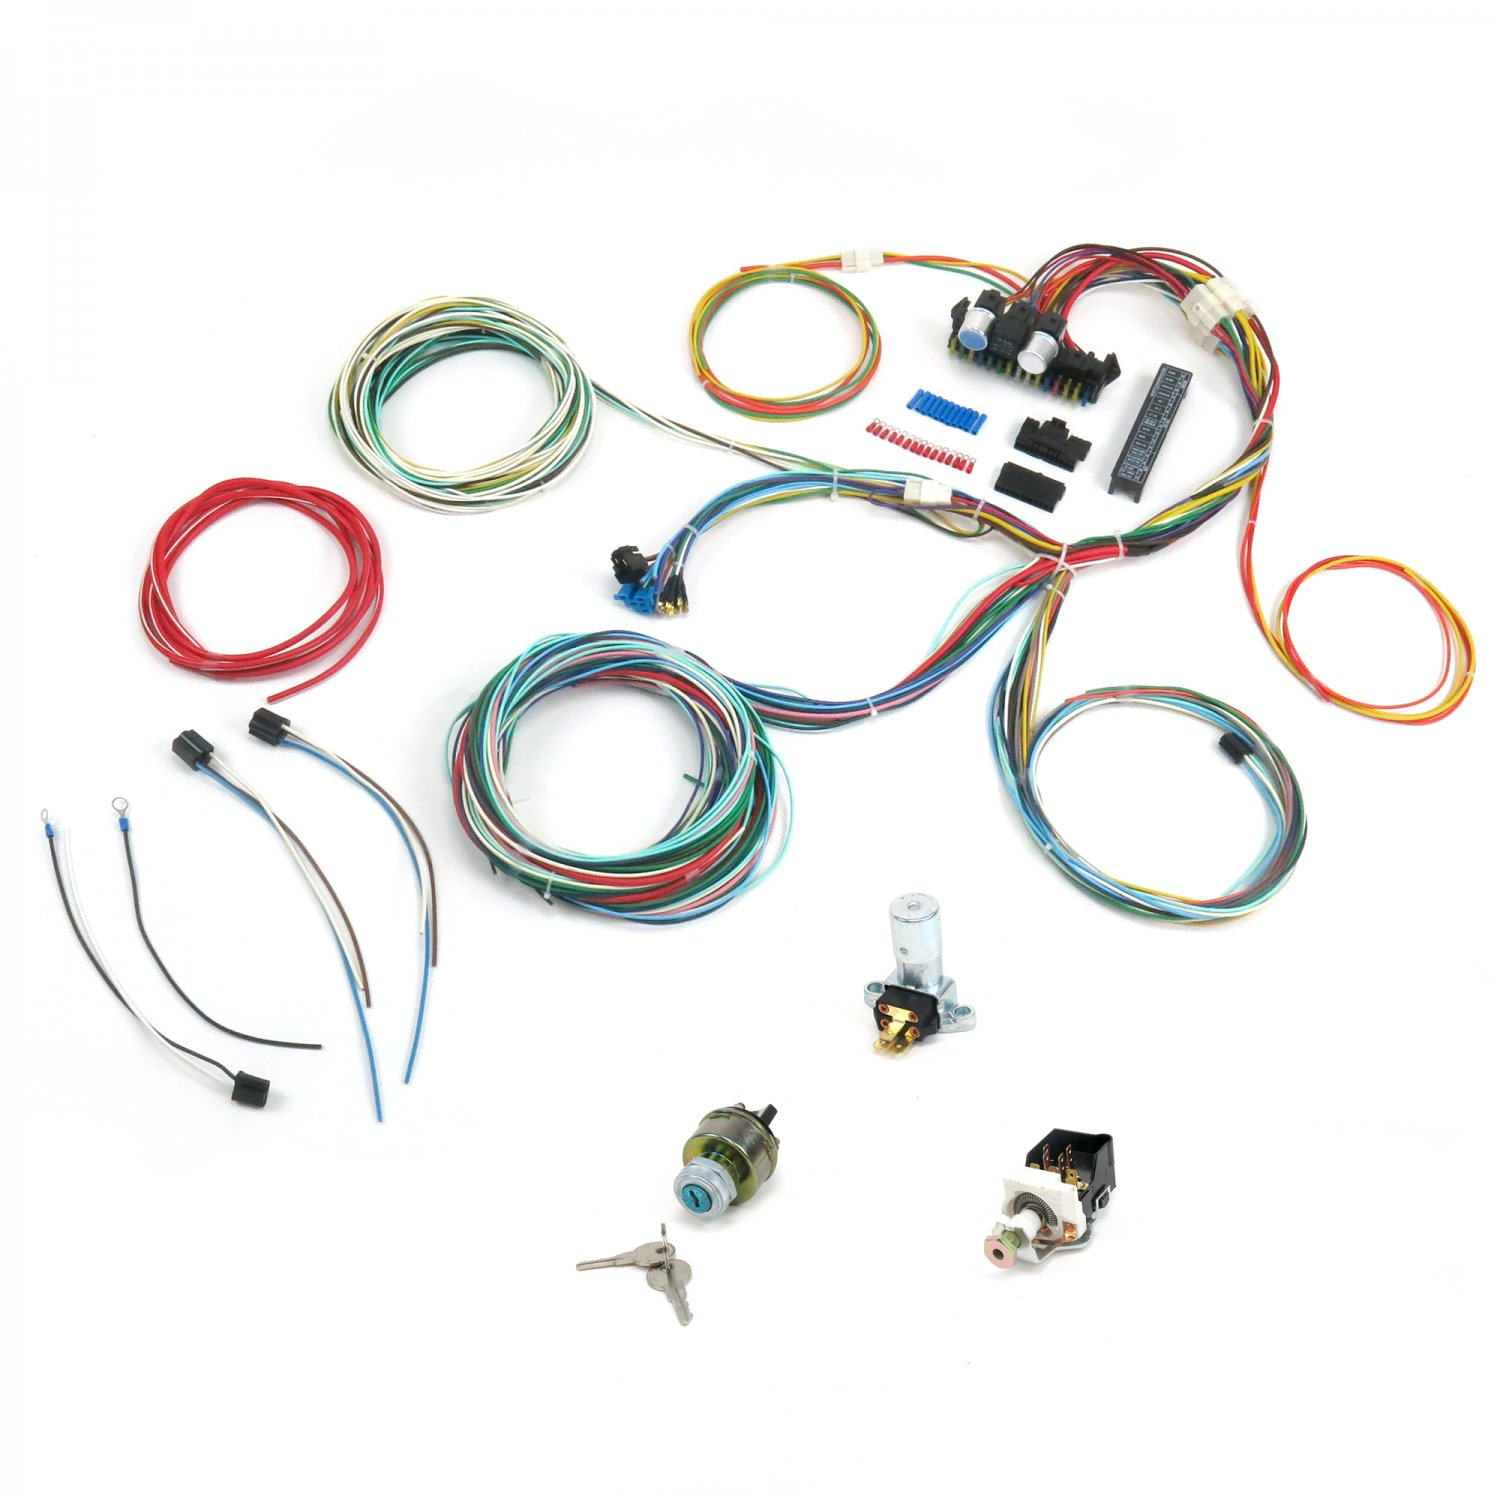 1965 1970 Dodge Coronet and Plymouth Belvedere Main Wire Harness System rzr by Keep It Clean Wiring Accessories